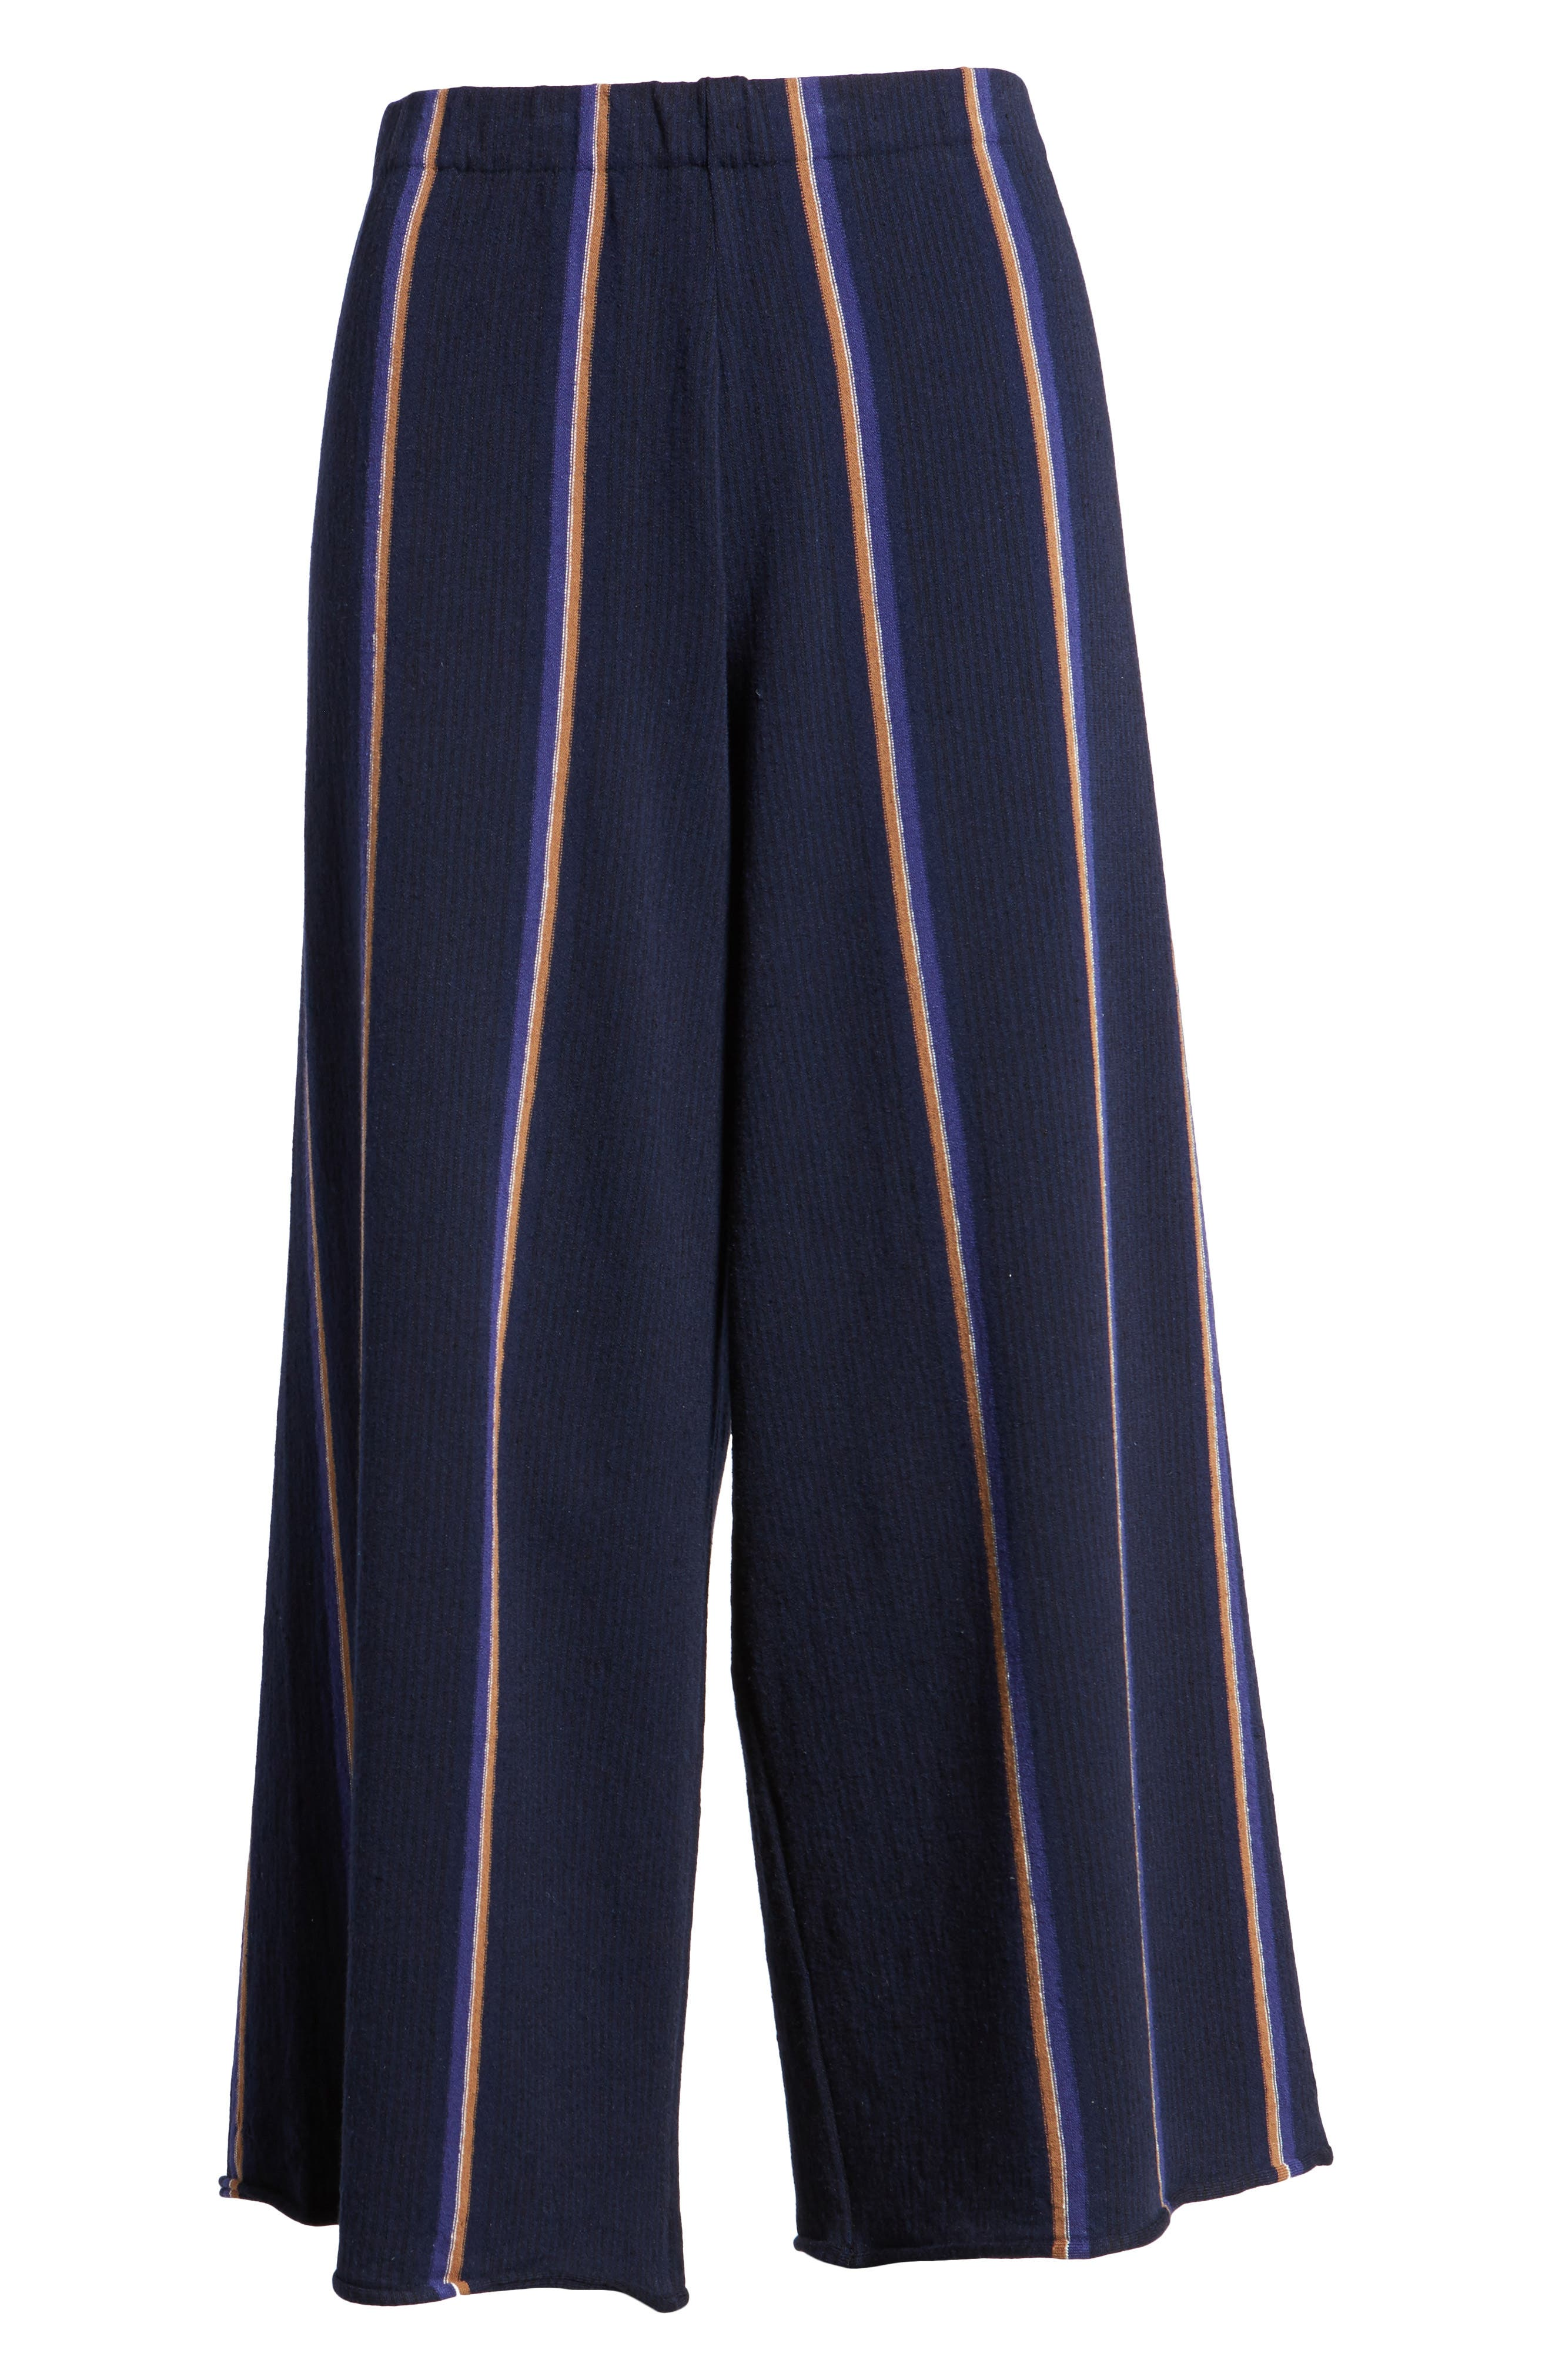 Lined Up Knit Pants,                             Alternate thumbnail 7, color,